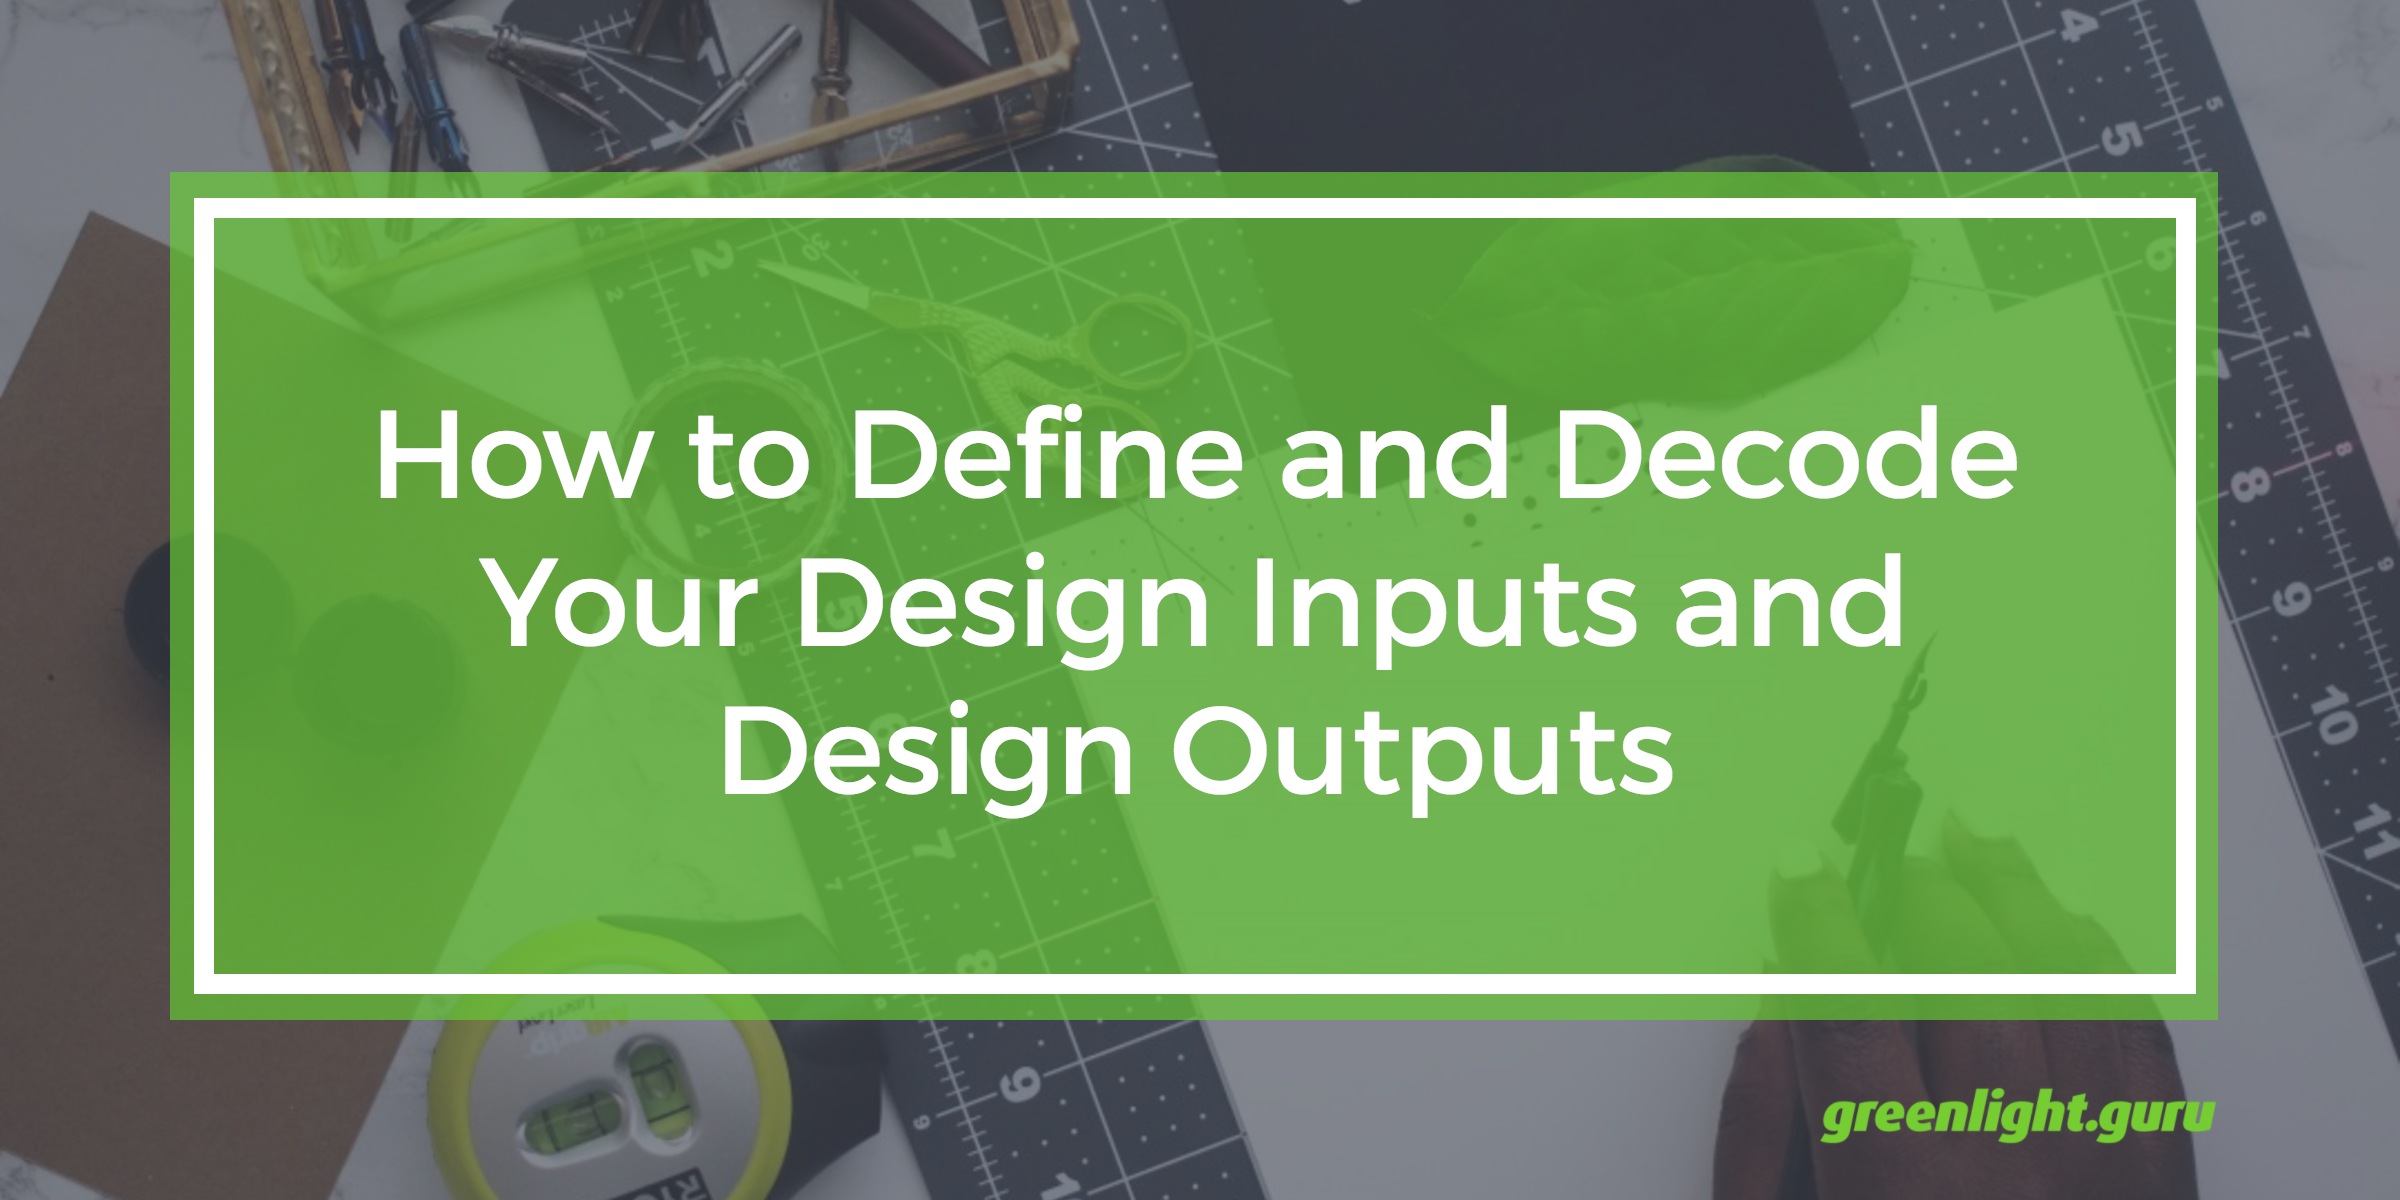 How to Define and Decode Your Design Inputs and Design Outputs - Featured Image